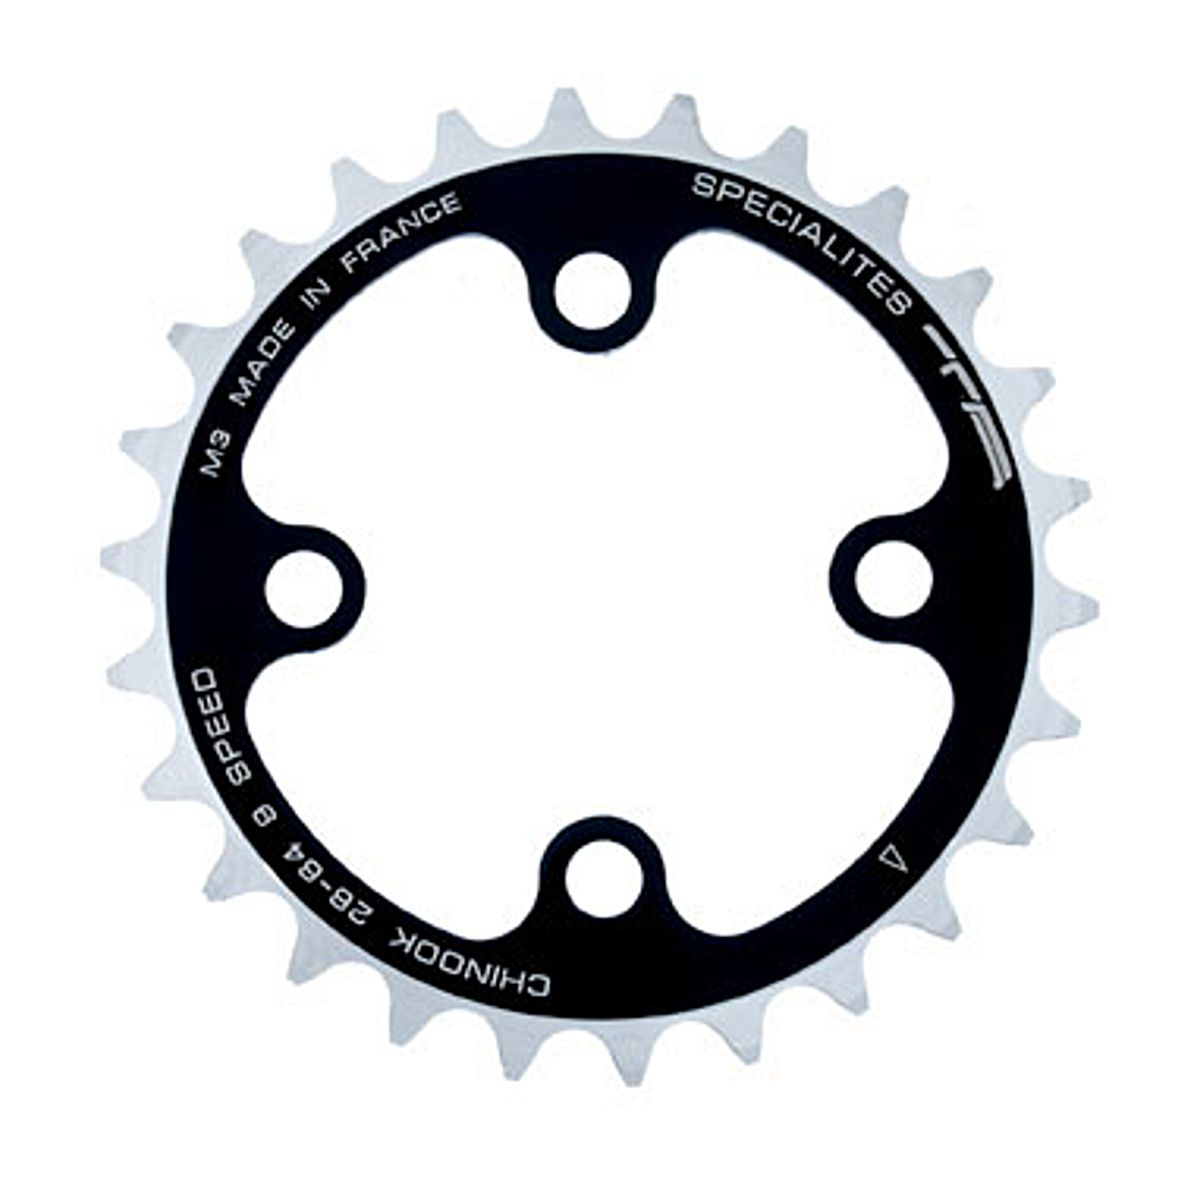 Chinook 9-speed 26-tooth chainring